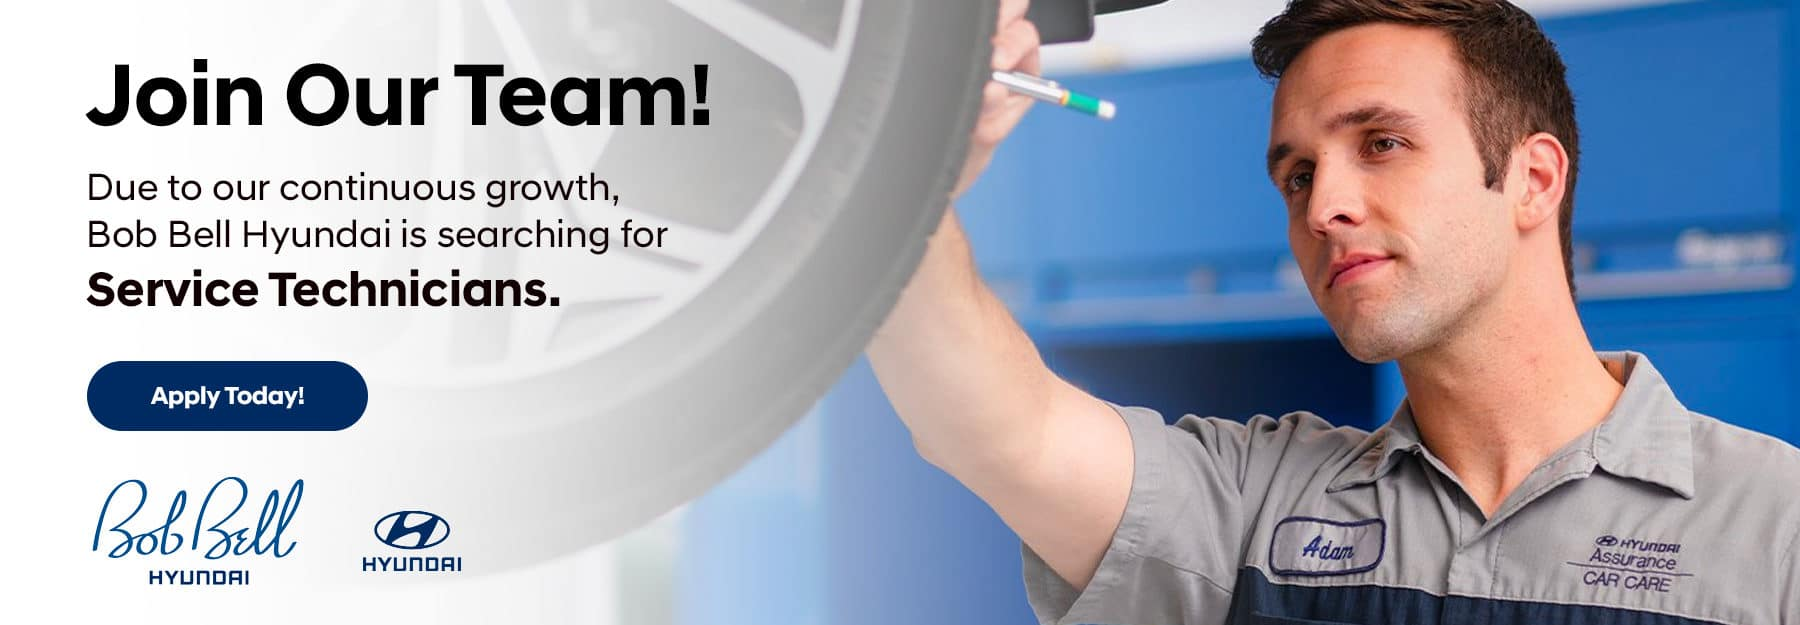 Join Our Team!, We're Hiring. Due to our continuous growth, Bob Bell Hyundai is searching for Service Technicians.